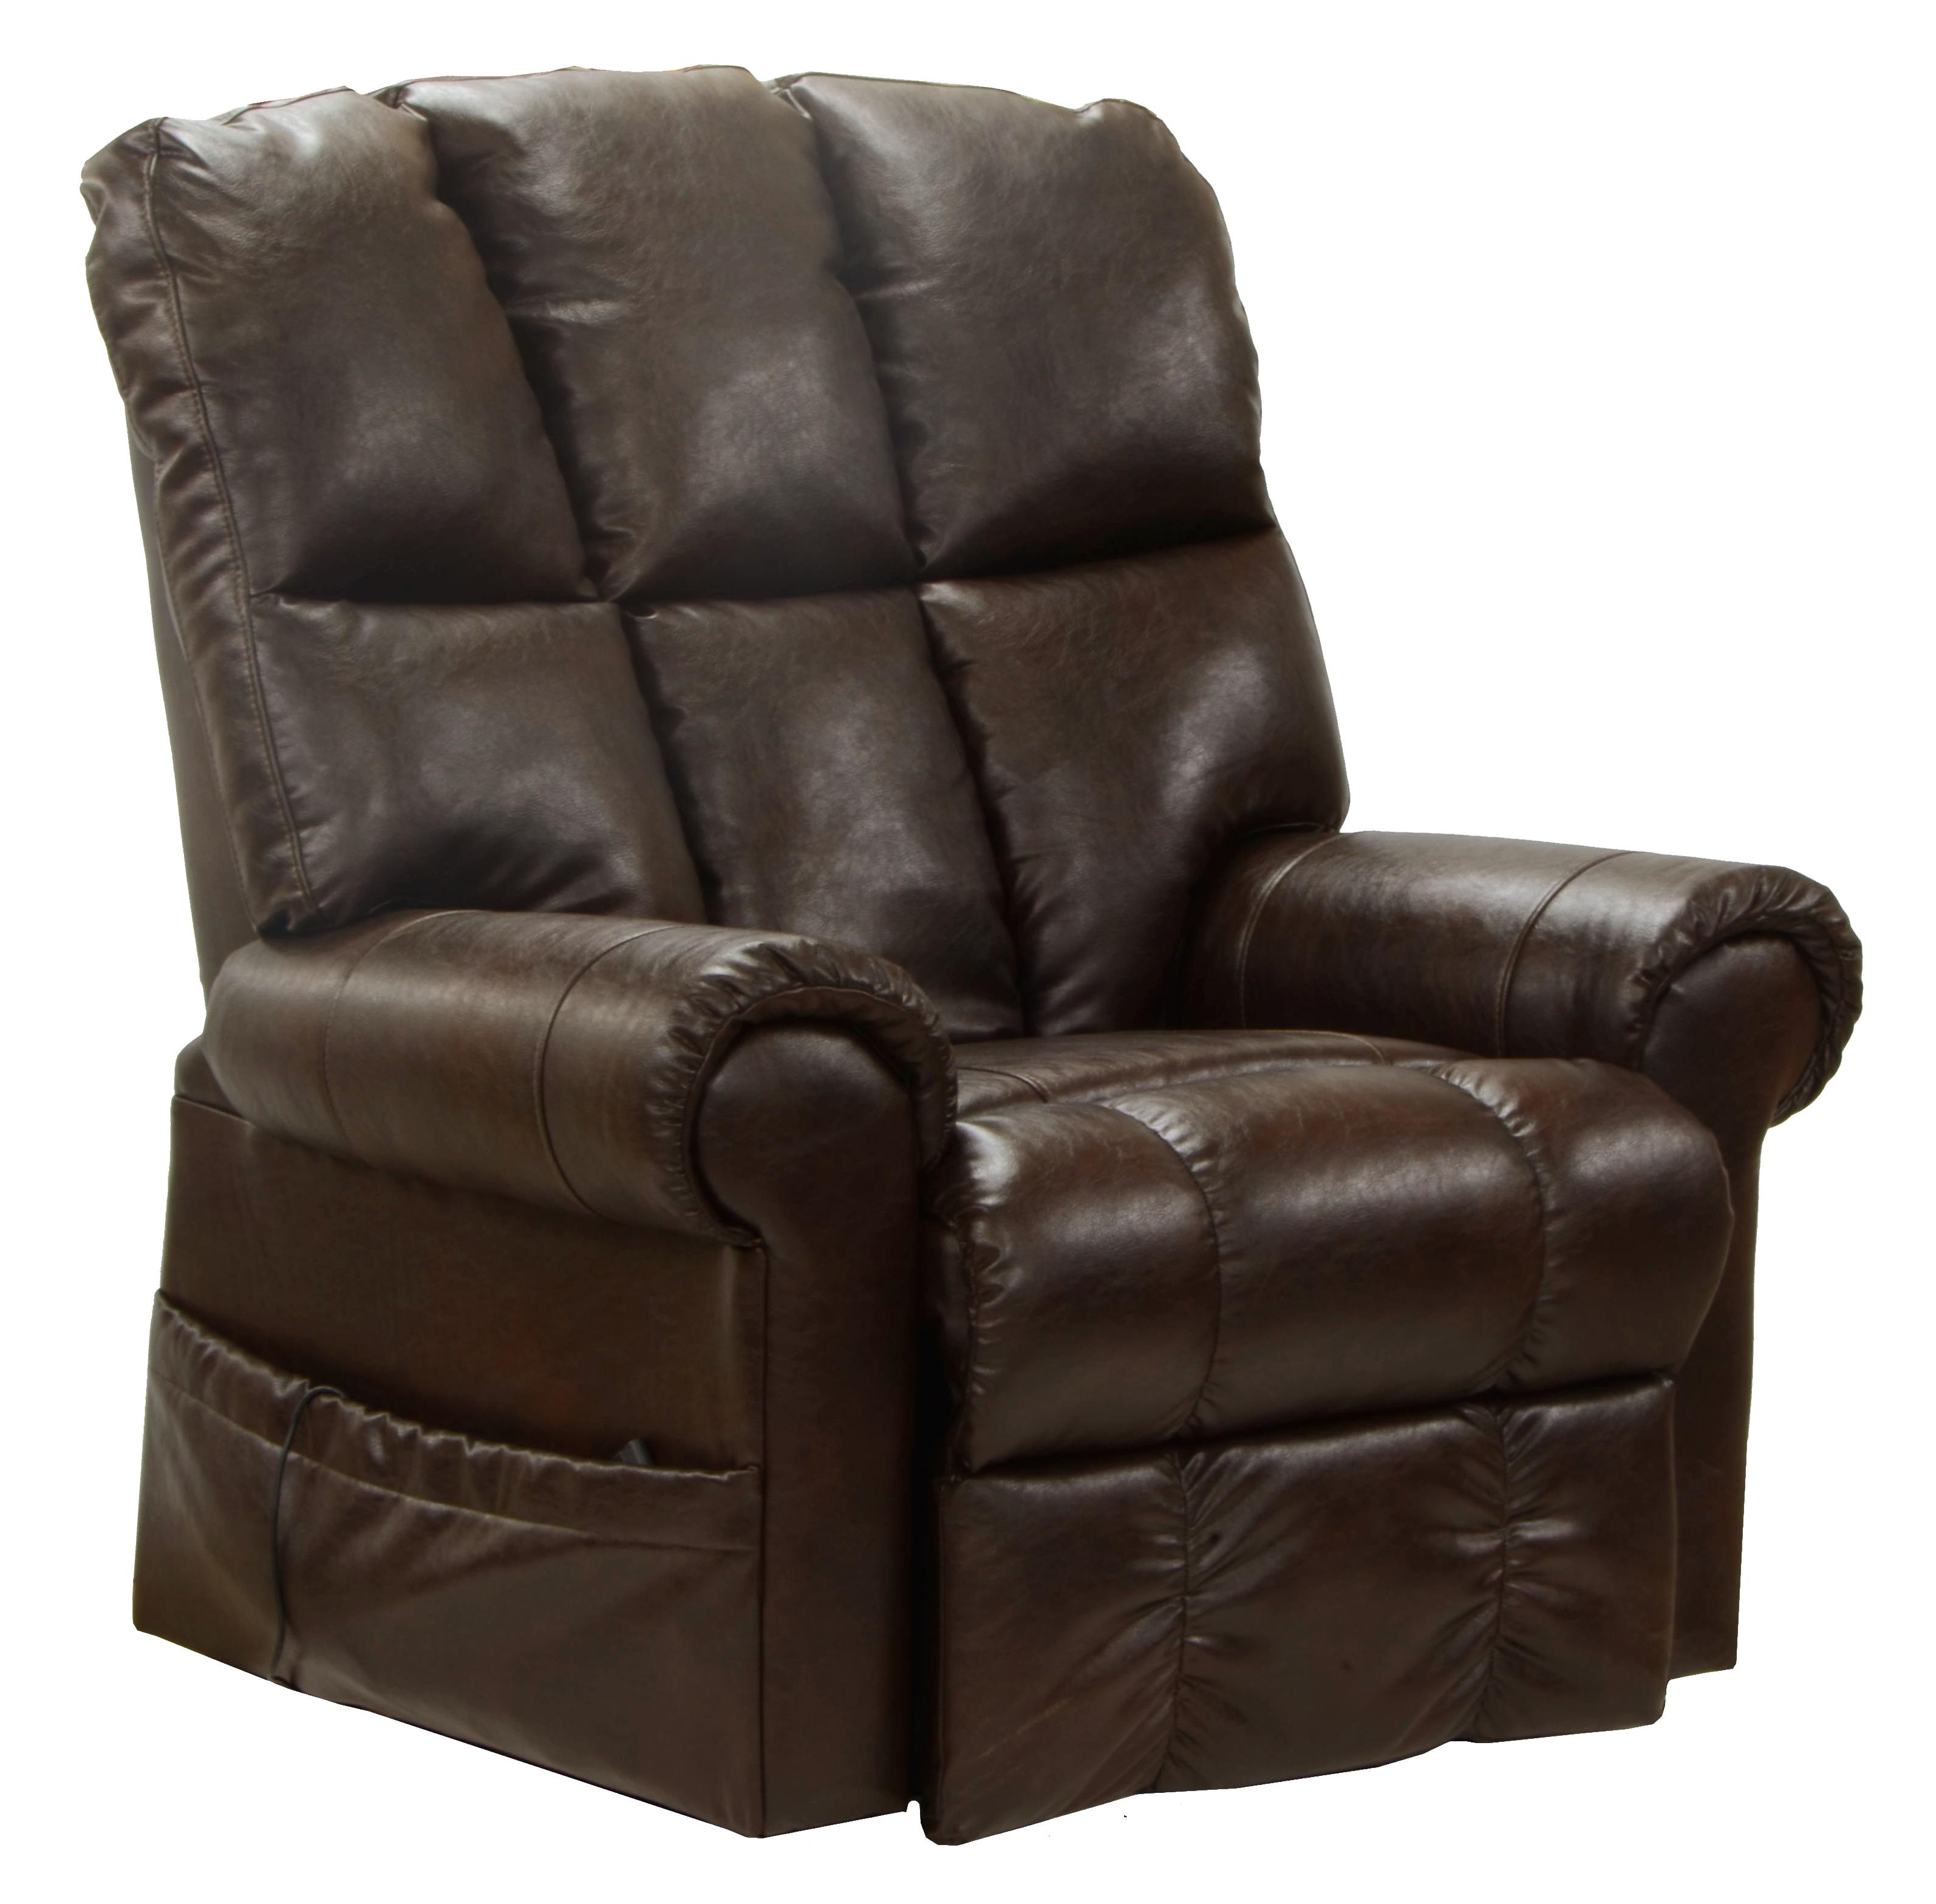 Catnapper Motion Chairs And Recliners Stallworth Power